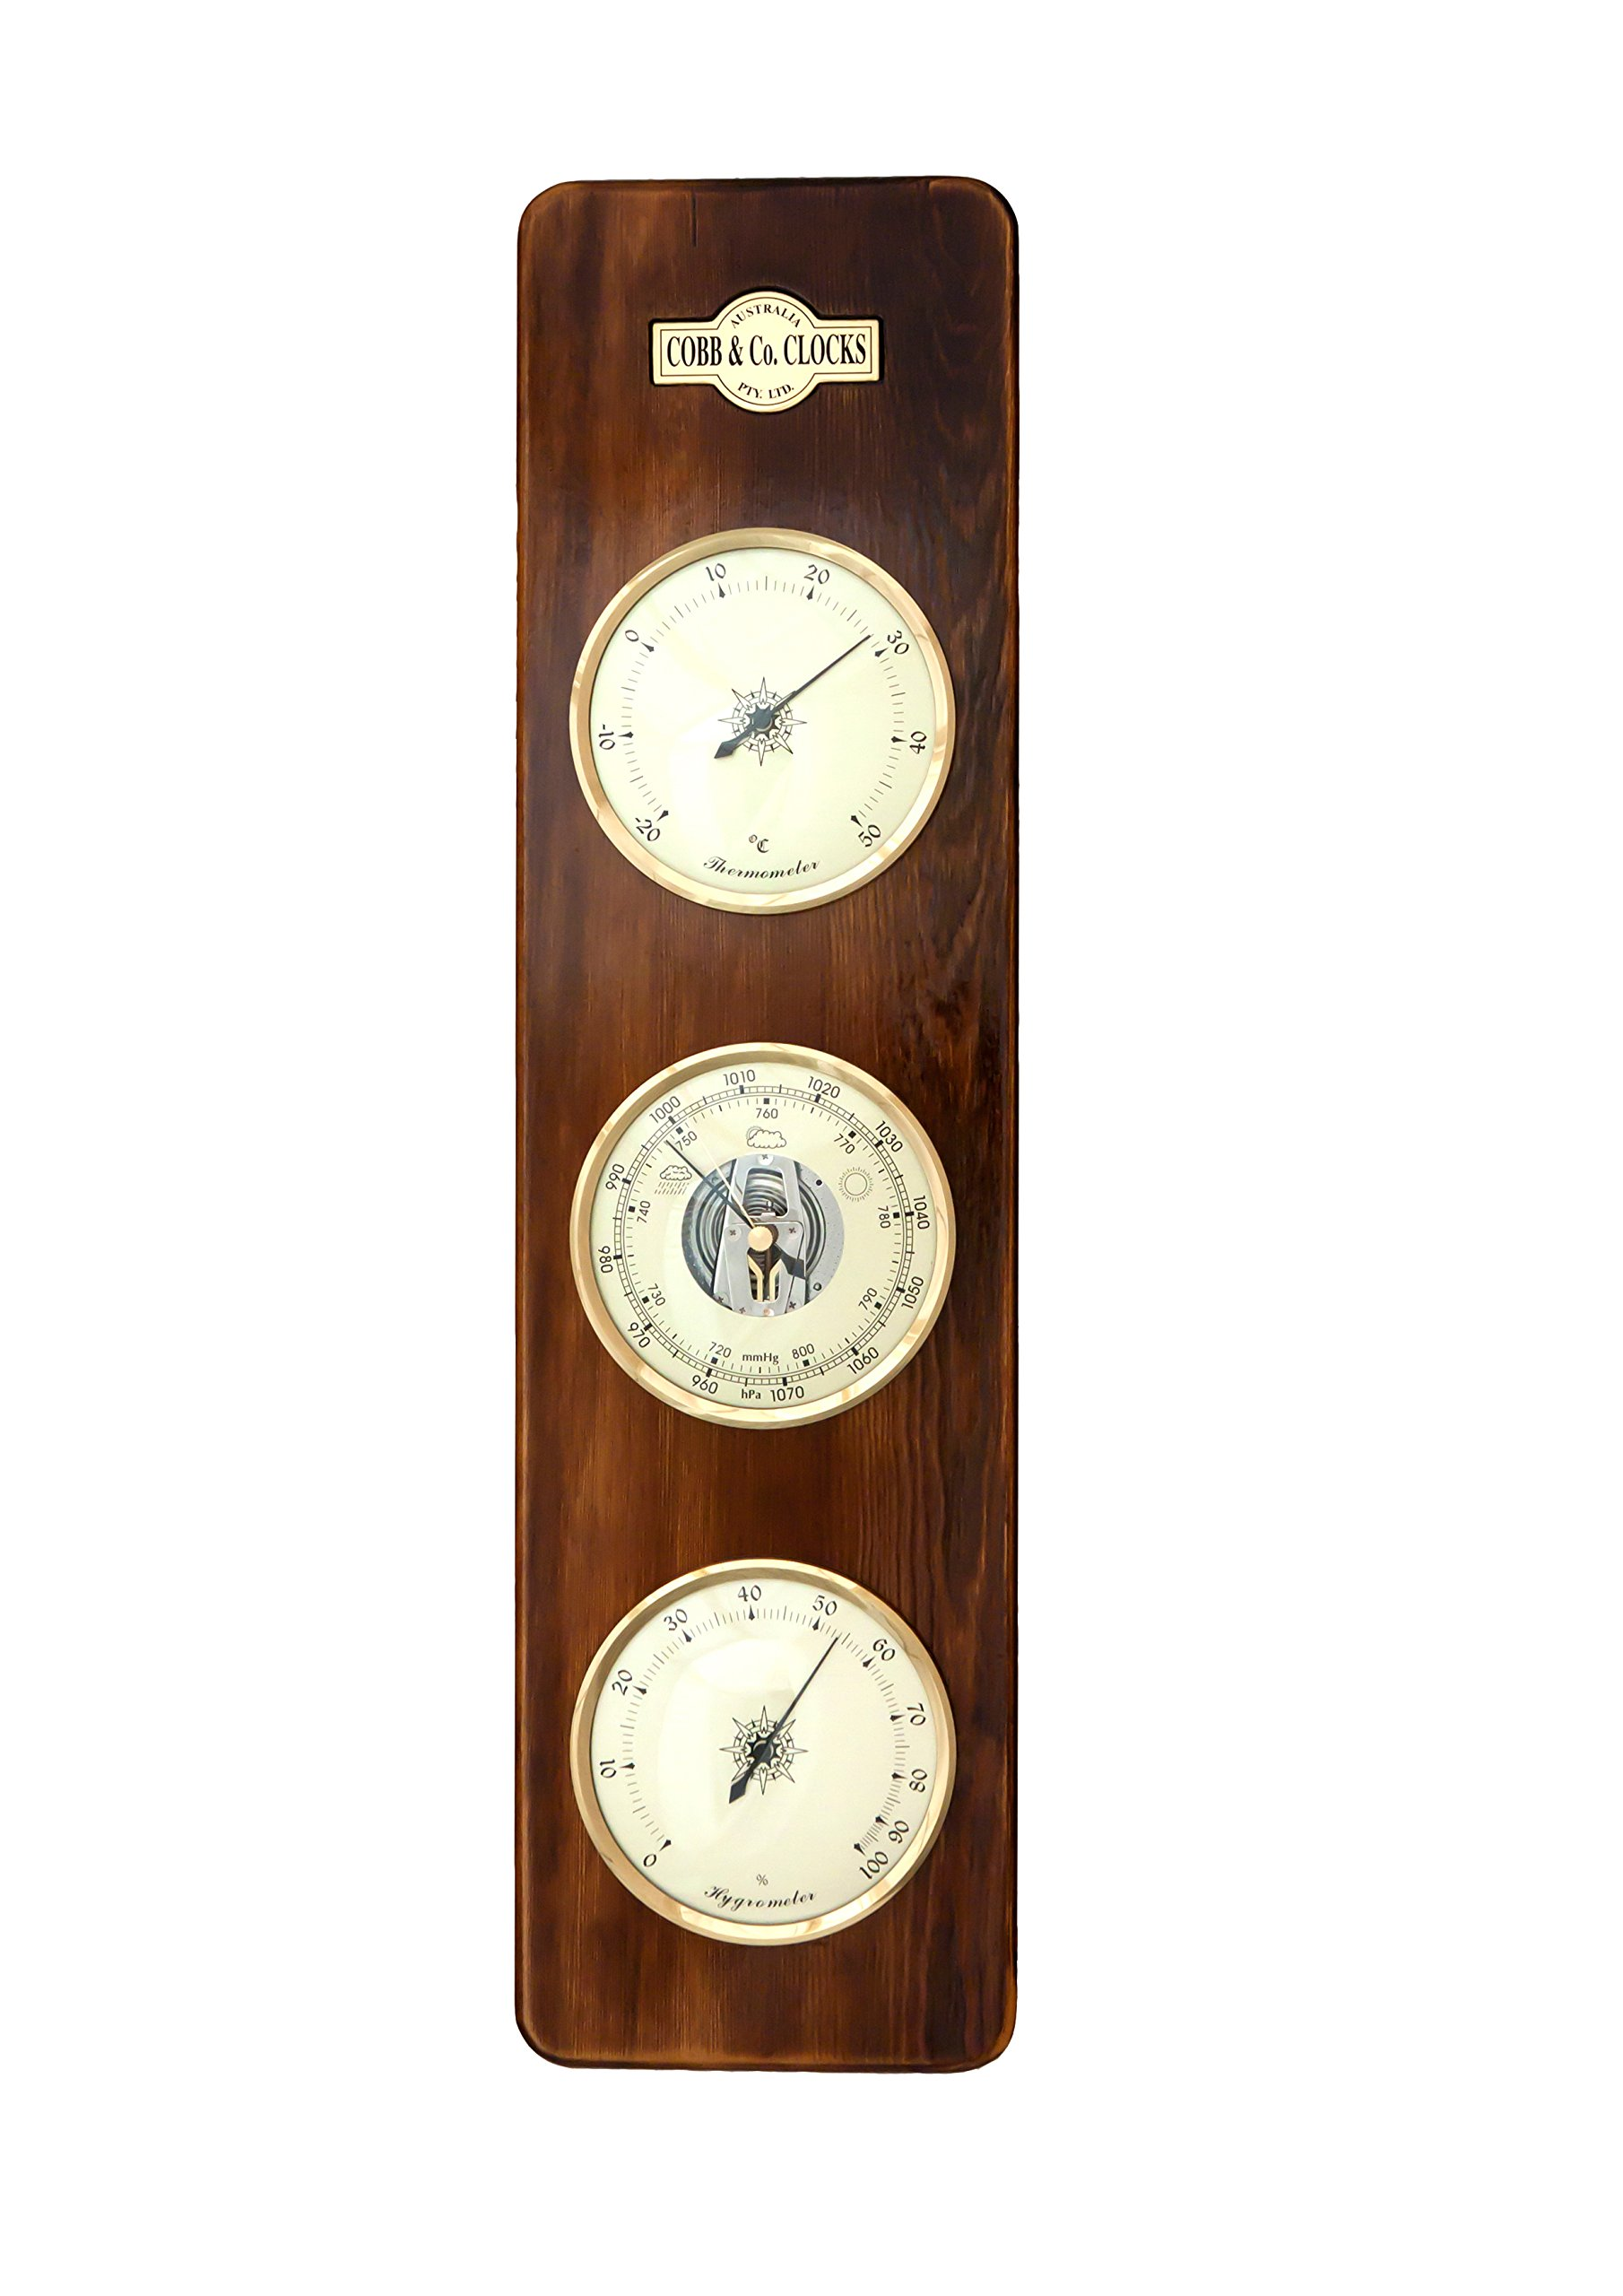 COBB & Co. Large 3 in 1 Barometer, Walnut